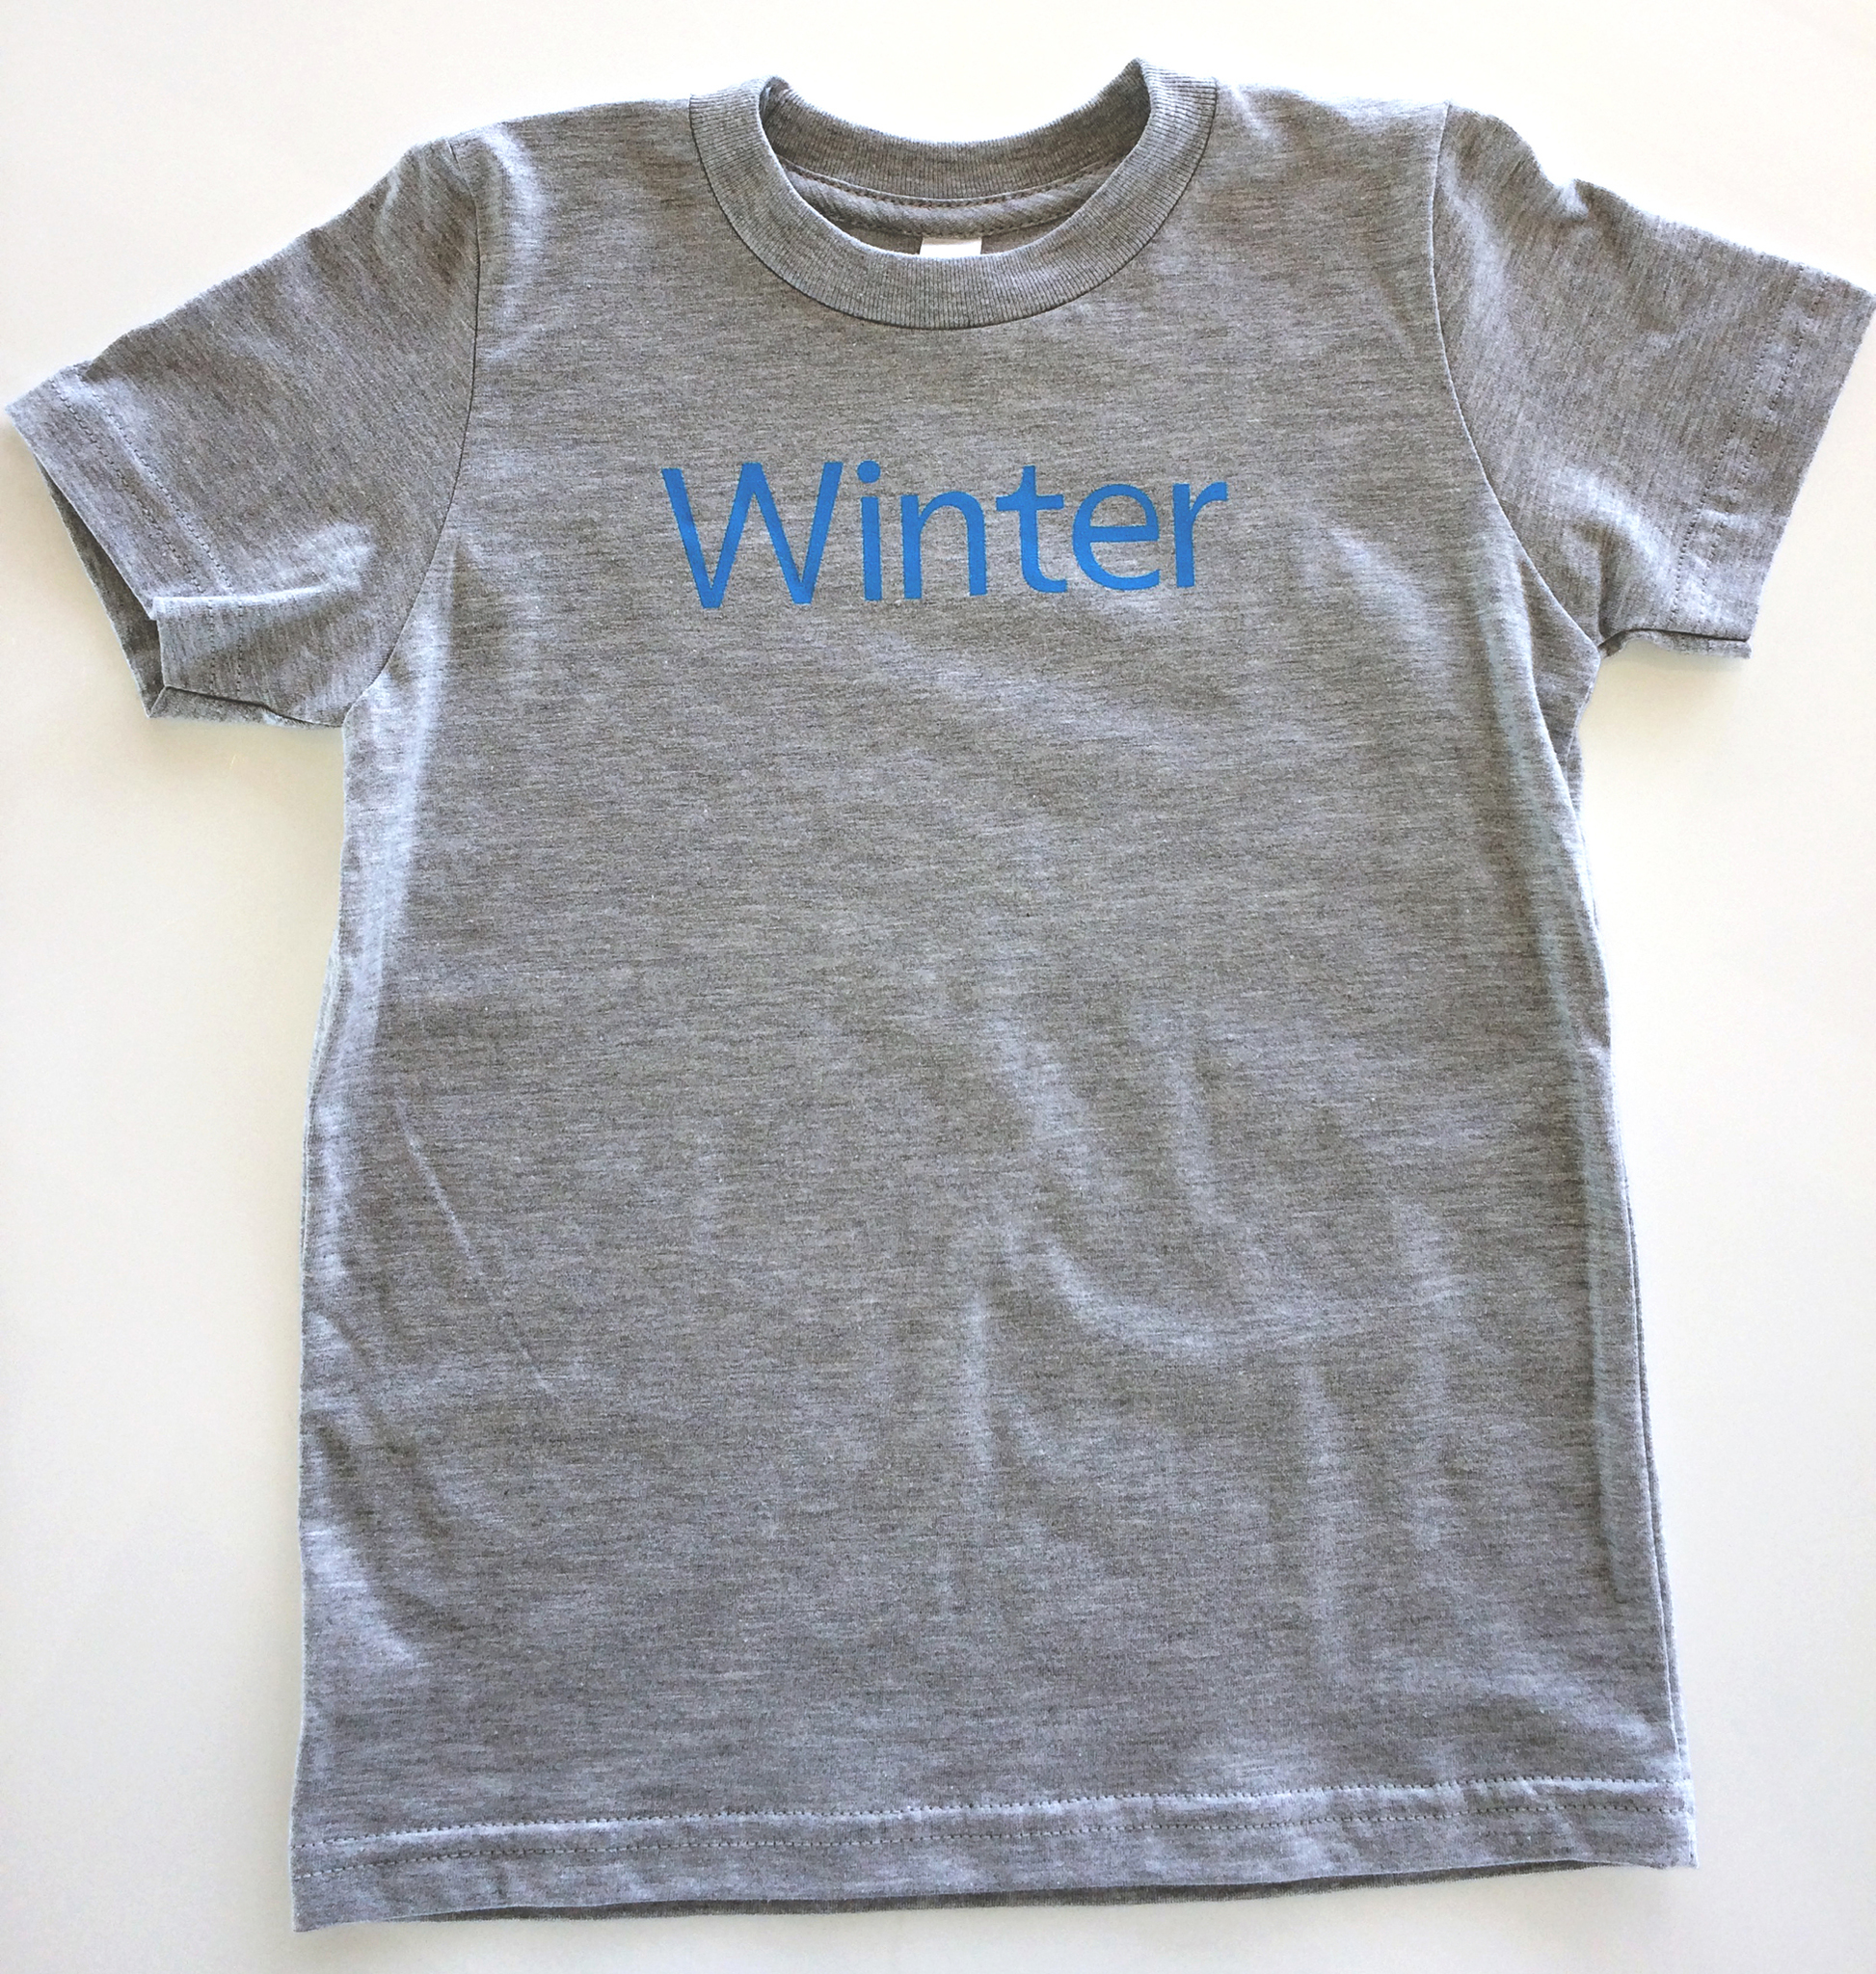 Toddler winter on gray